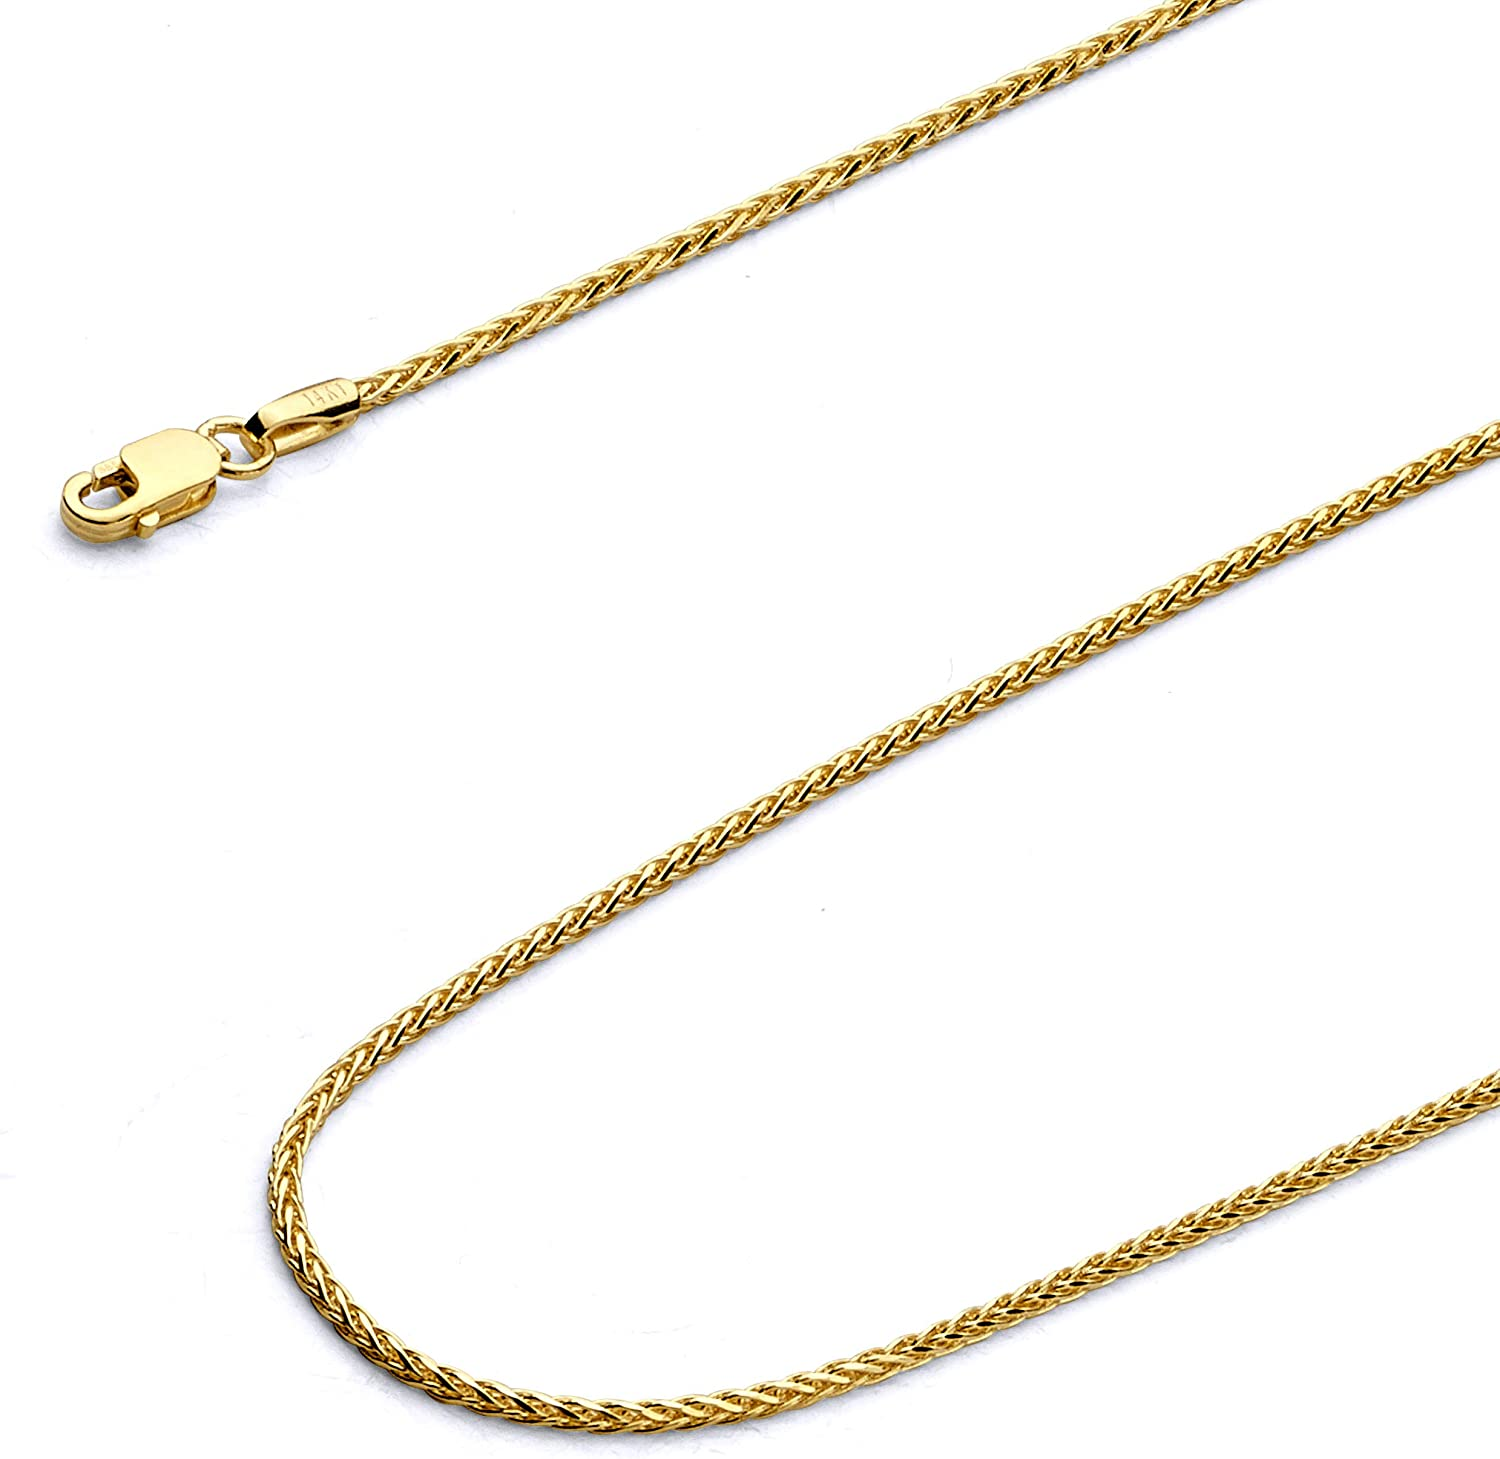 18 INCHES LONG 14KT GOLD DIAMOND CUT WHEAT CHAIN WITH LOBSTER LOCK WHEAT CHAIN